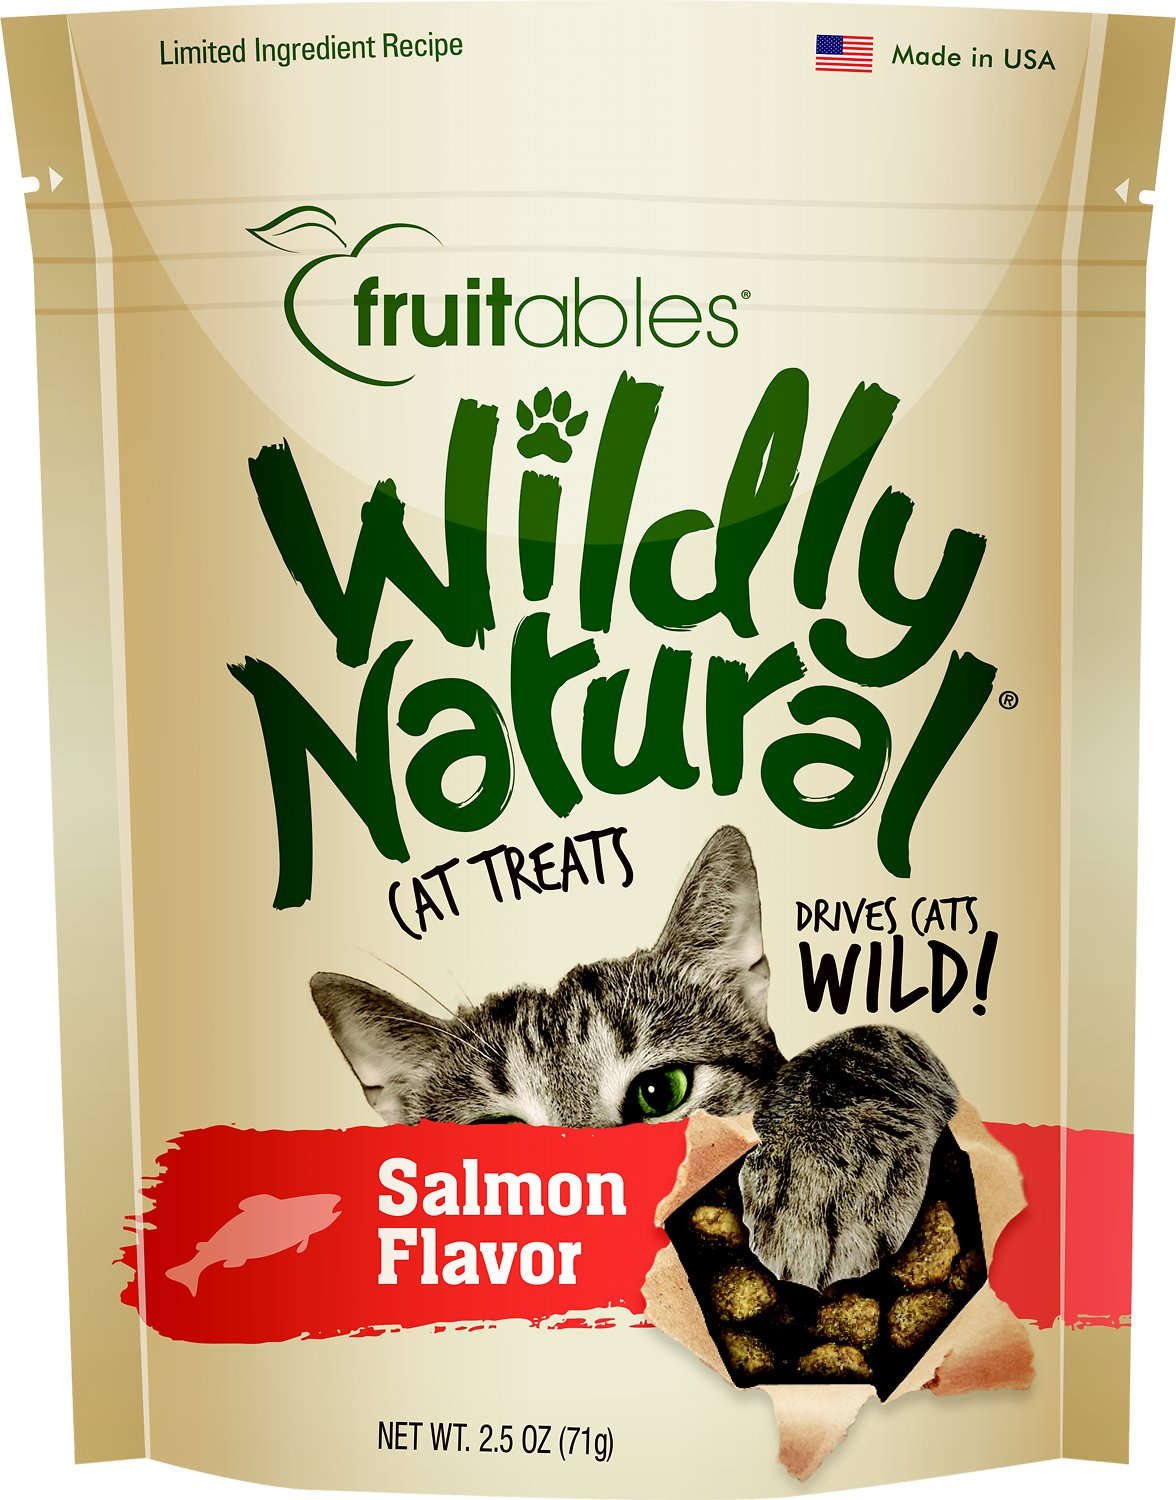 Fruitables Wildly Natural Salmon Flavor Cat Treats, 2.5-oz bag Weights: 2.56 ounces